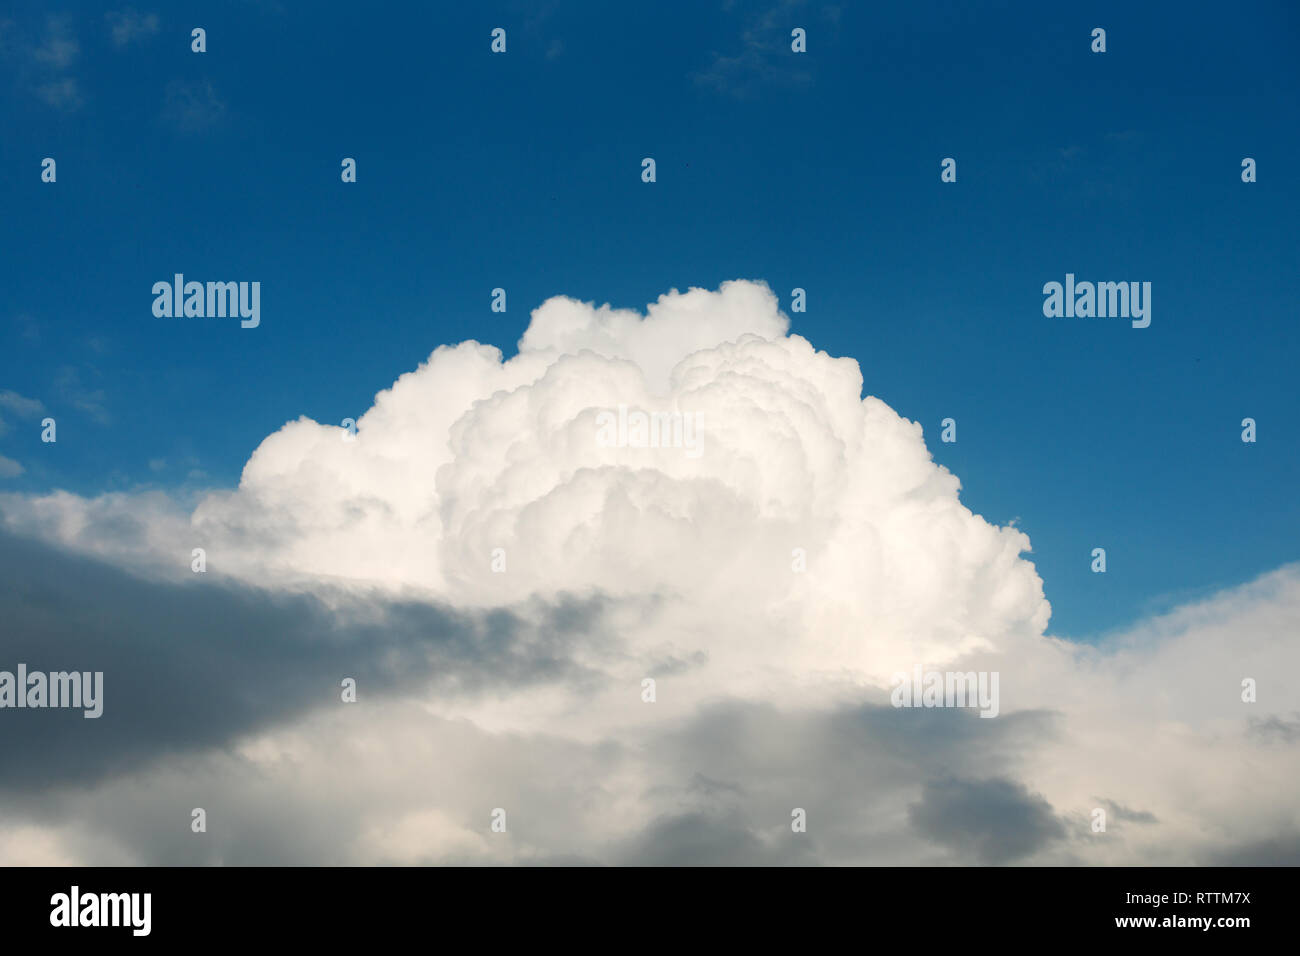 Big white cloud and blue sky background, copy space. Sky and clouds. - Stock Image